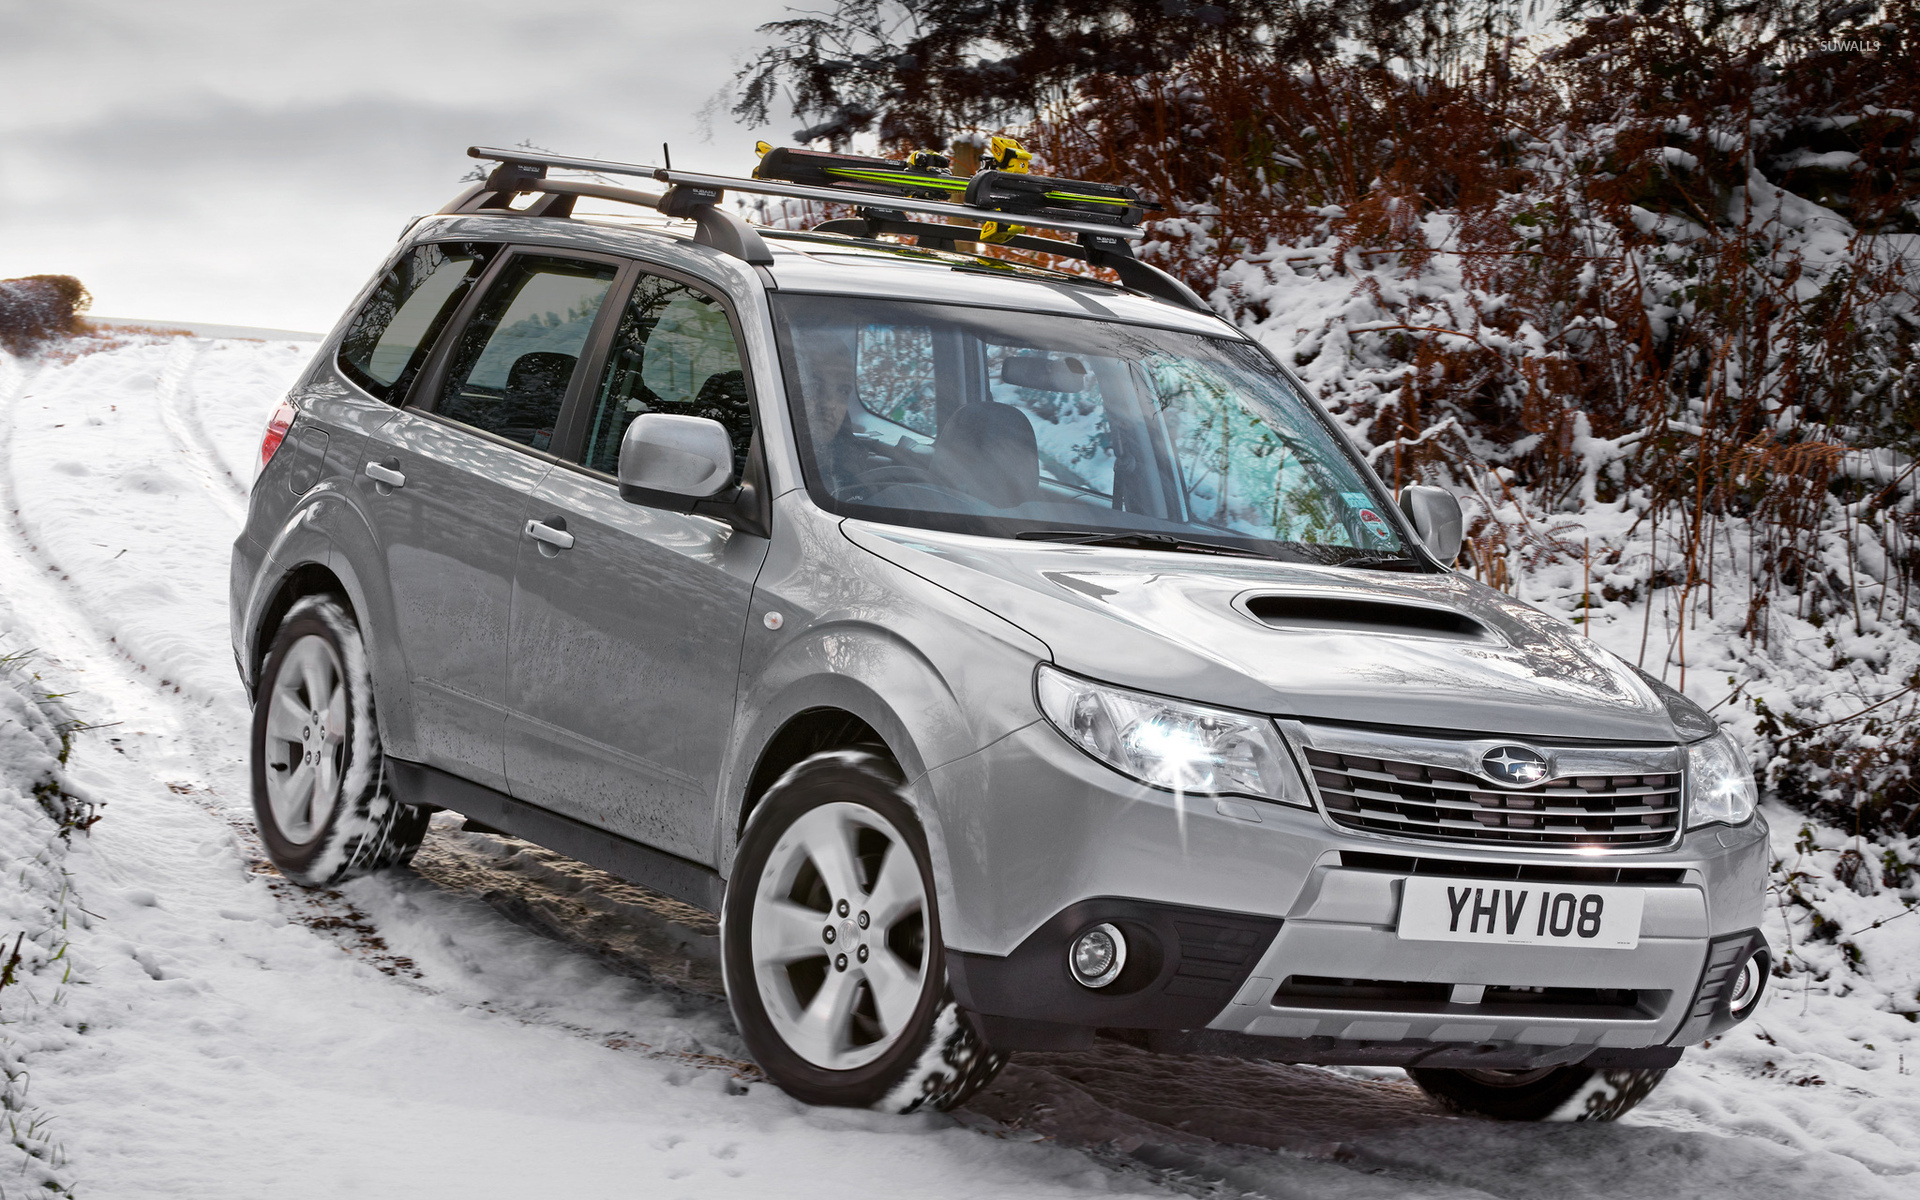 1920x1200 - Subaru Forester Wallpapers 31